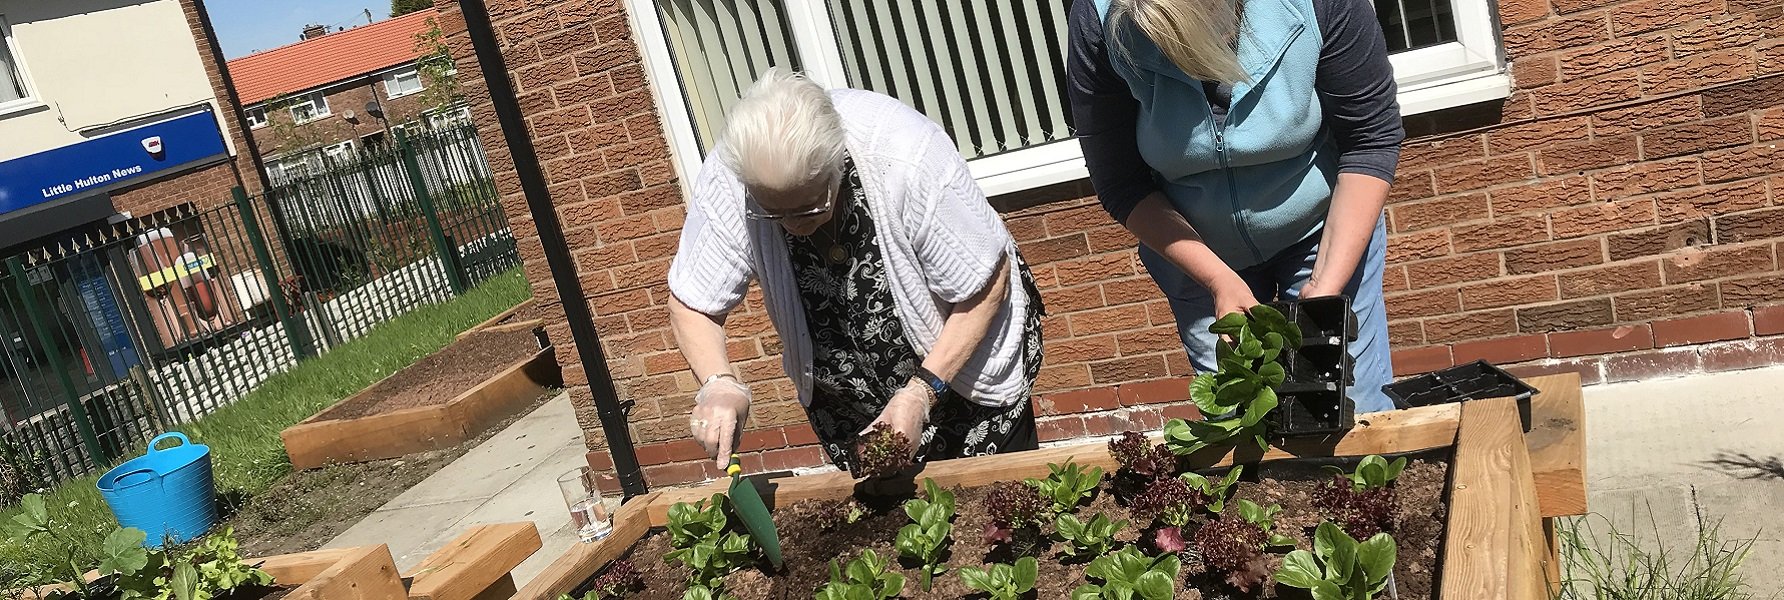 Two women, one older, planting salad leaf plants from seed trays into a raised bed, at a community centre with other raised beds